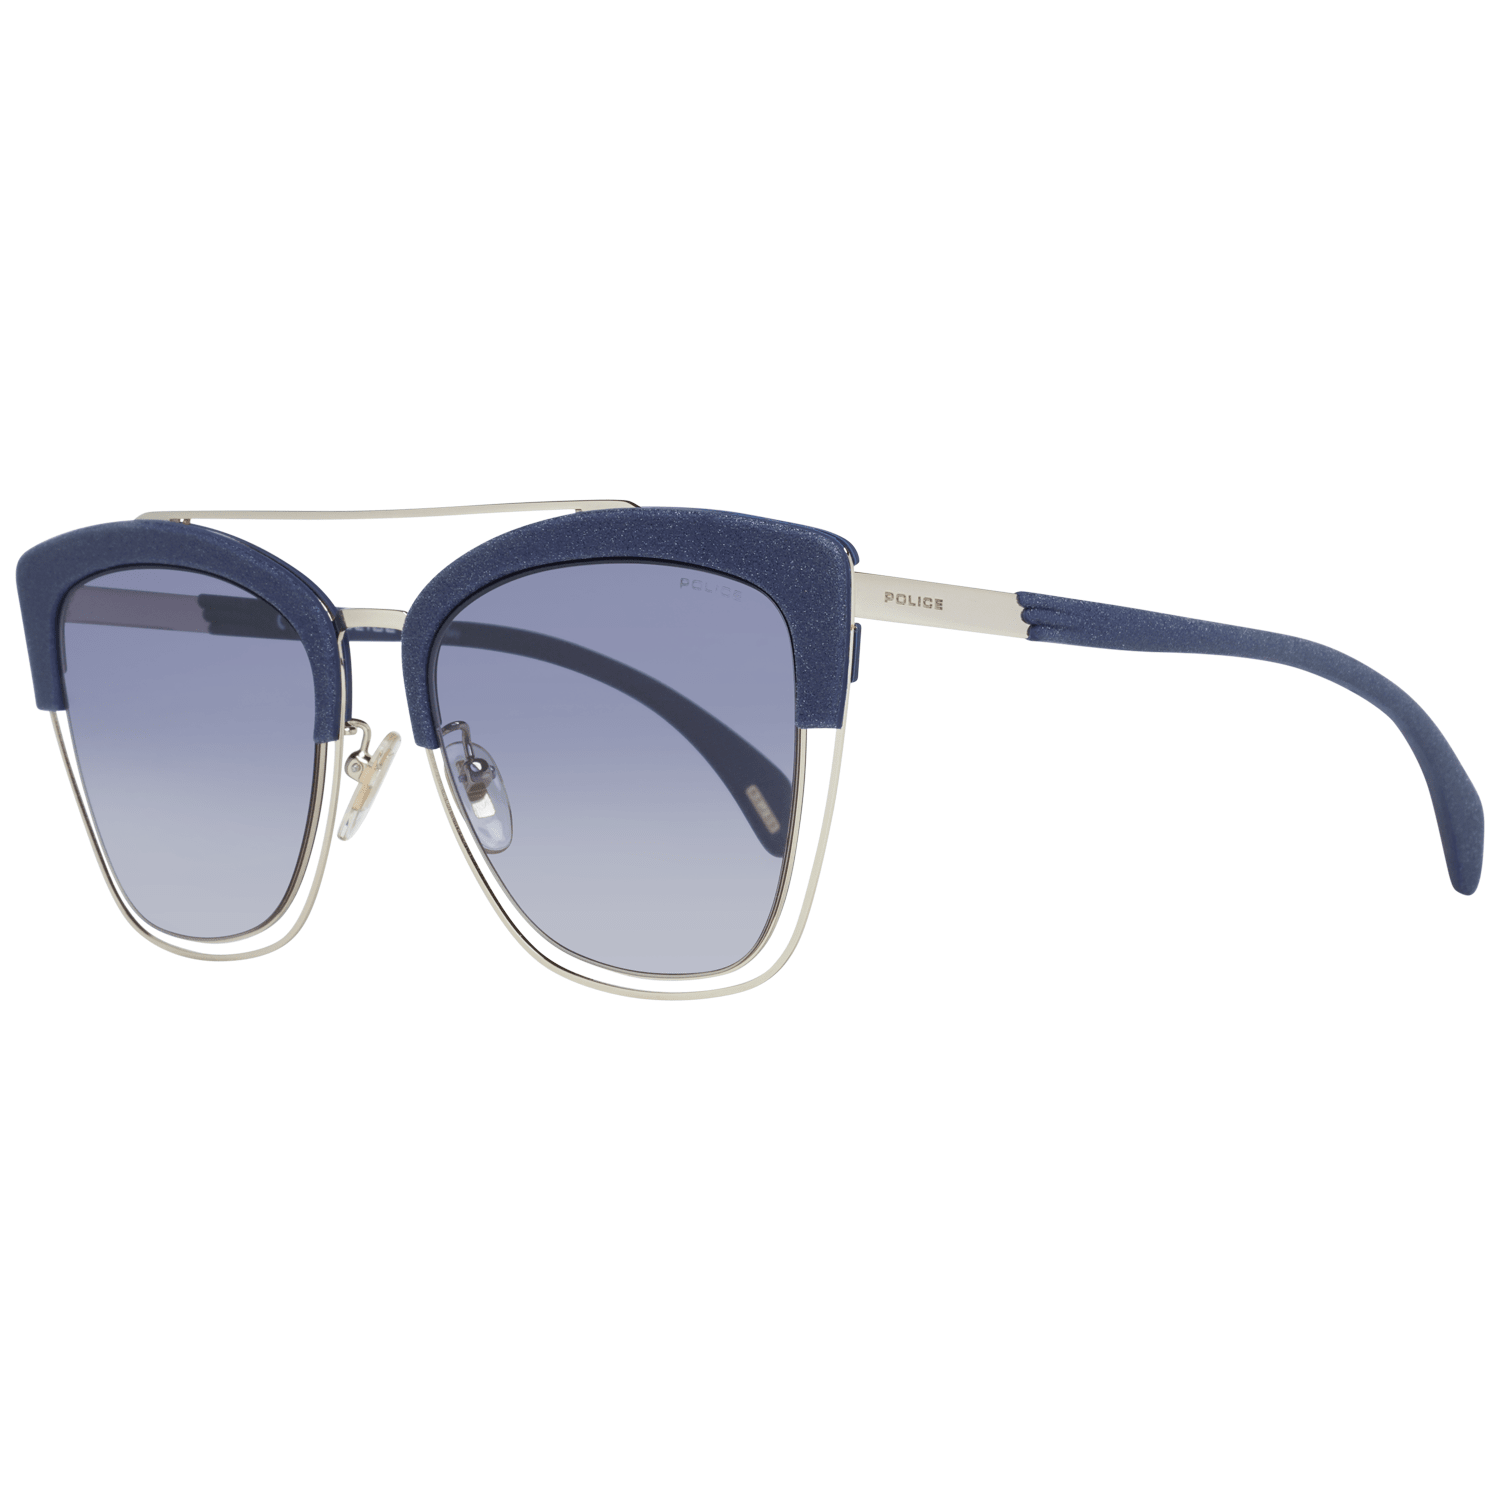 Police Women's Sunglasses Silver RB4256 56609